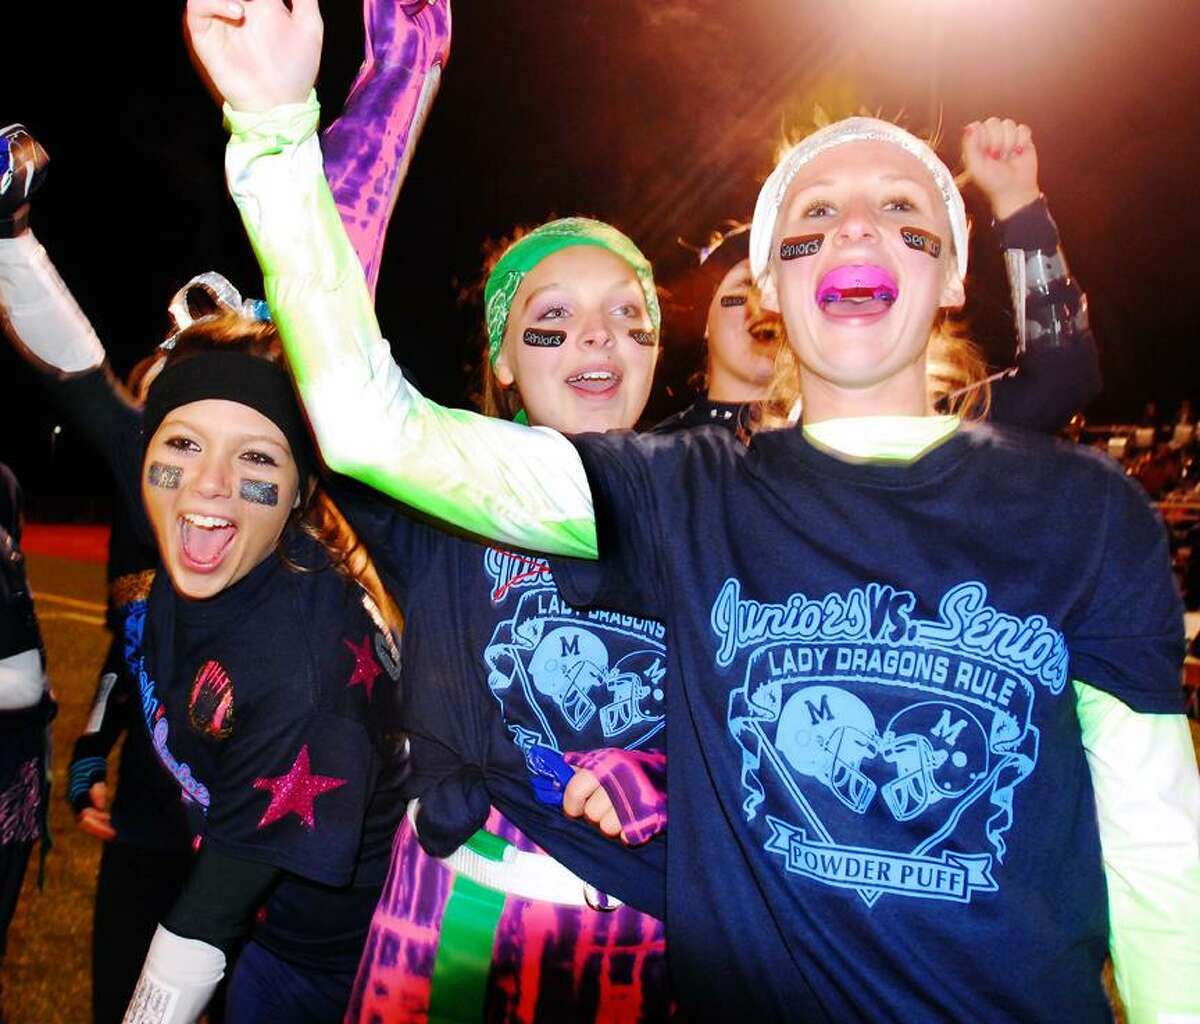 Catherine Avalone/The Middletown PressThe 23rd Annual Powder Puff game between the juniors and seniors on Monday night at Rosek-Skubel Stadium raised $3,000 for local charities.